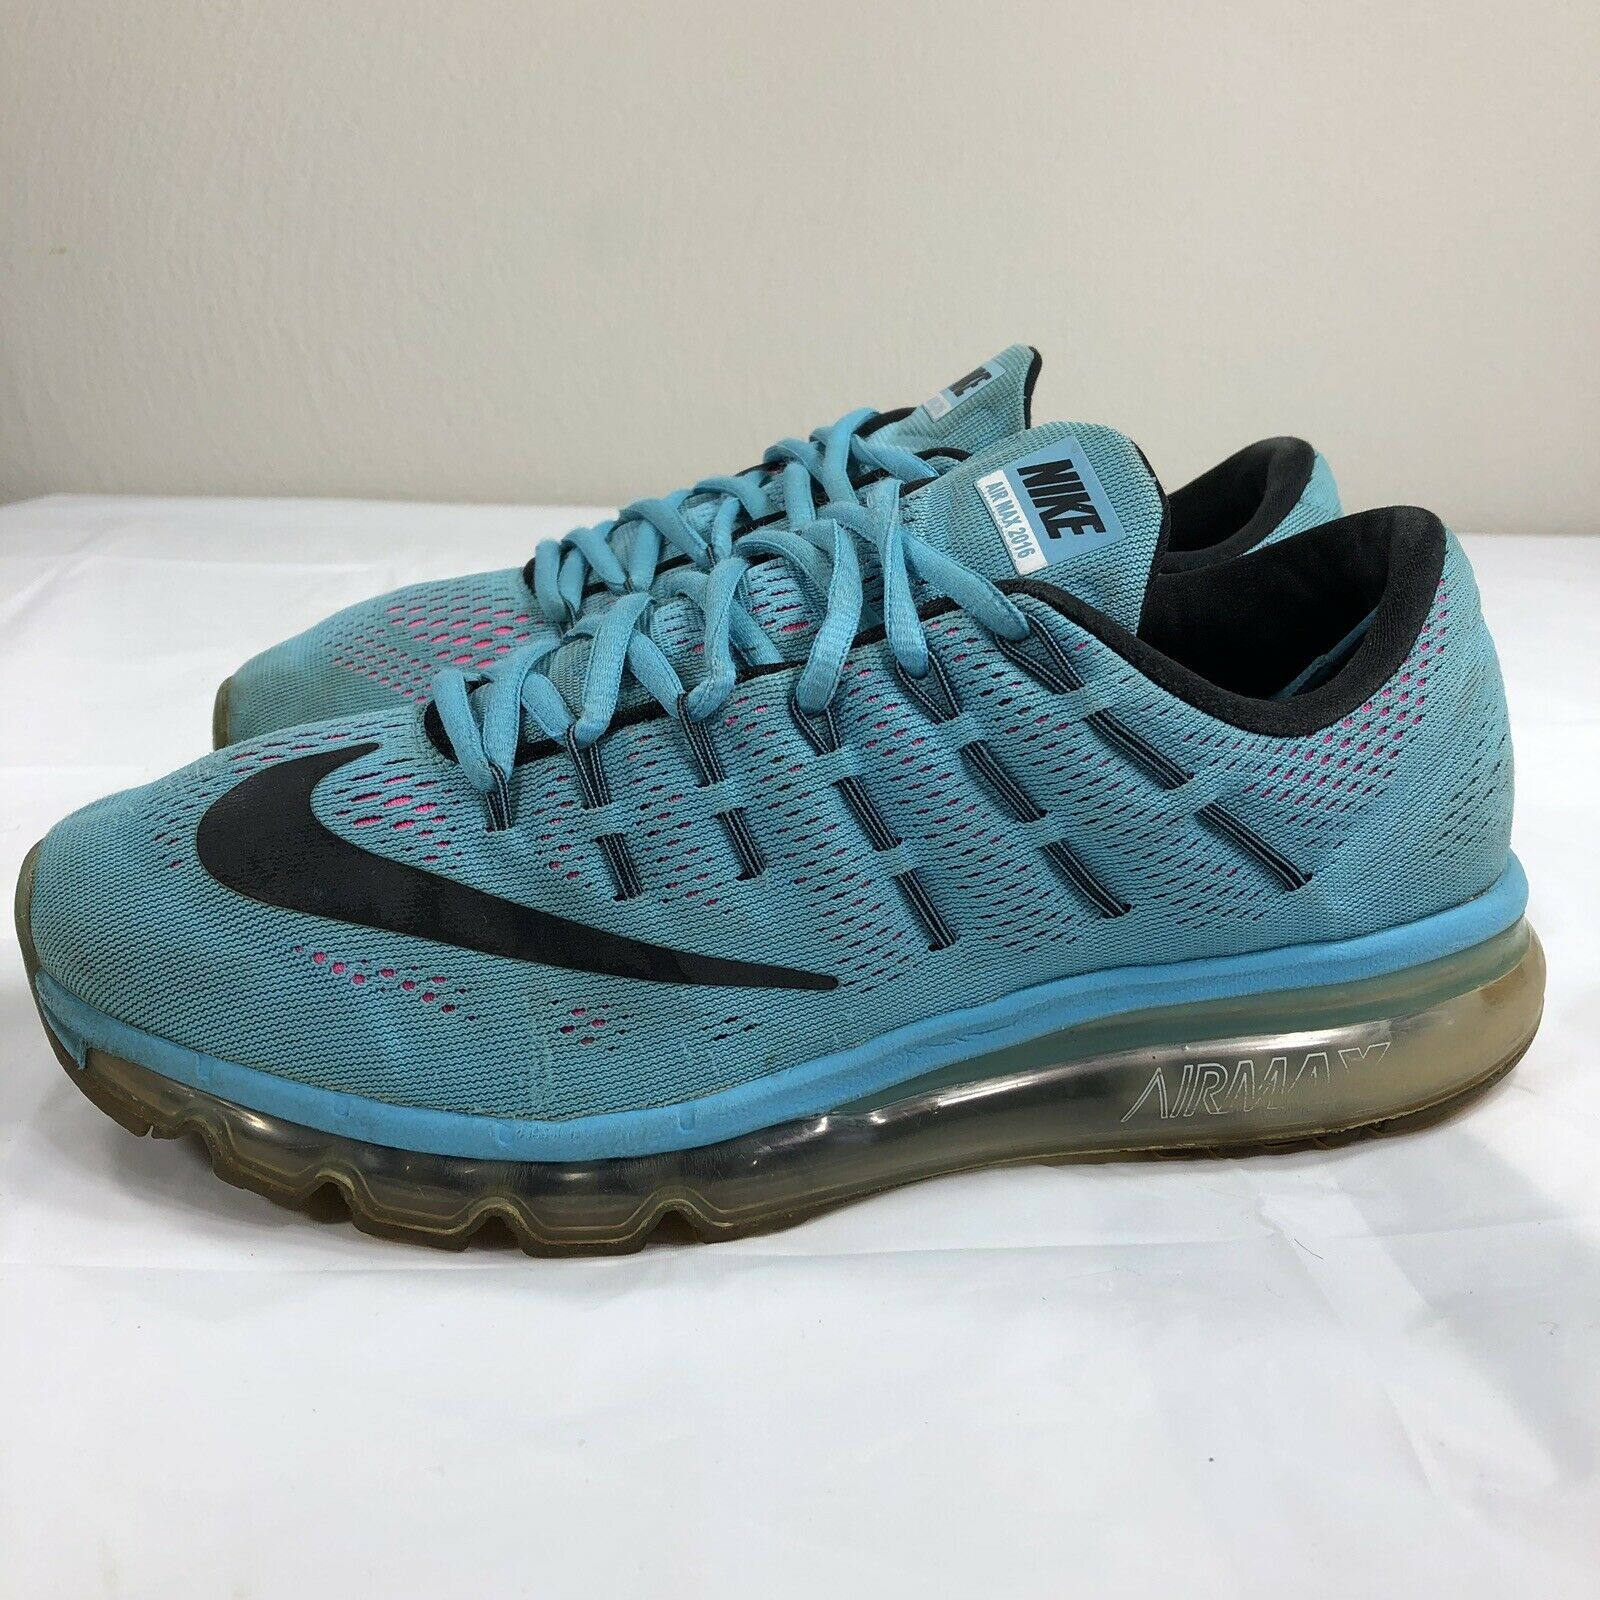 c46db11e93 S l1600. S l1600. Previous. Nike Air Max 2016 Running Shoes Women's 9.5  Trainer Athletic Blue Pink ...